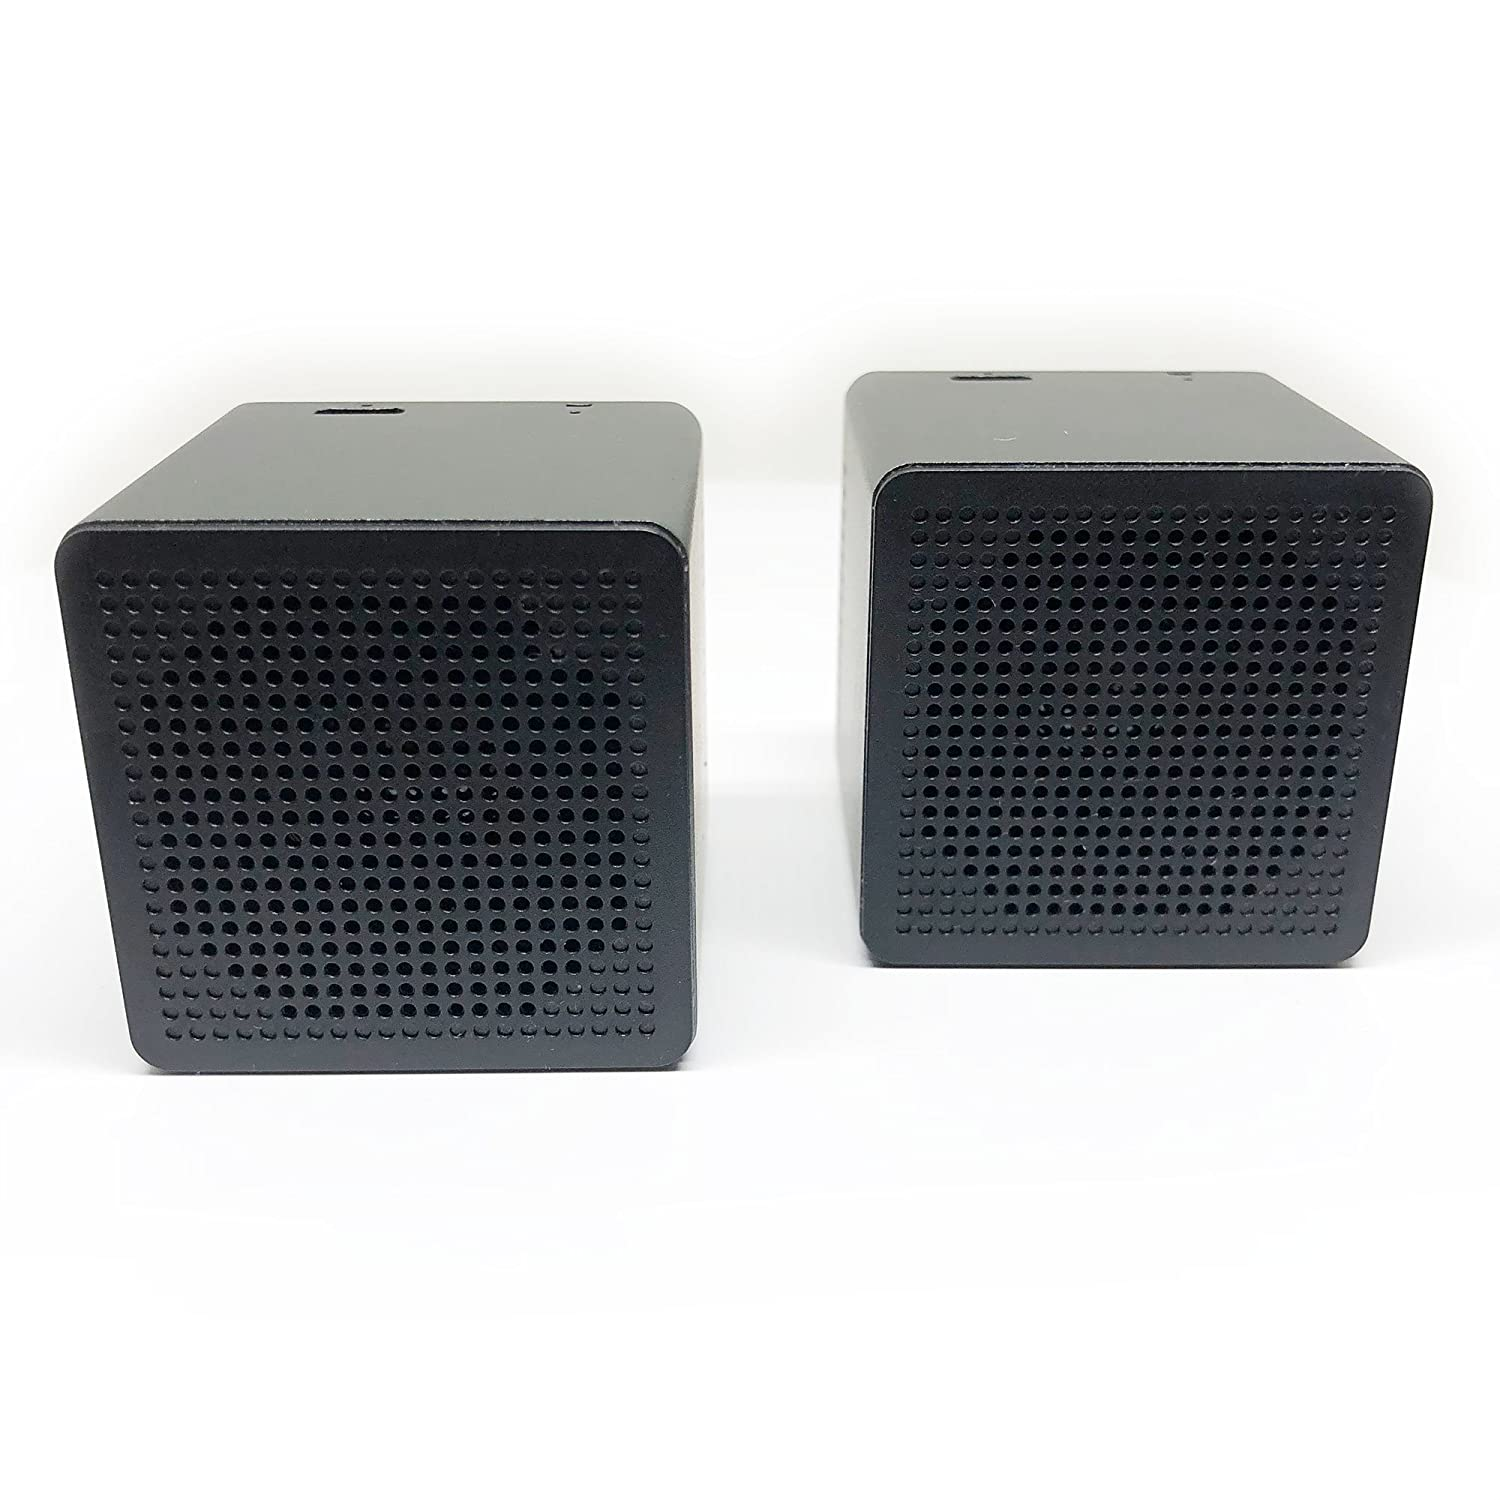 Wireless Bluetooth Speakers: True Twin Portable TWS Mini Stereo Mic Dual Big Super Bass Microphone Outdoor Pair Compatible with iPhone Android Samsung Galaxy Nexus MAC PC Echo Long Run Technologies 713289196776